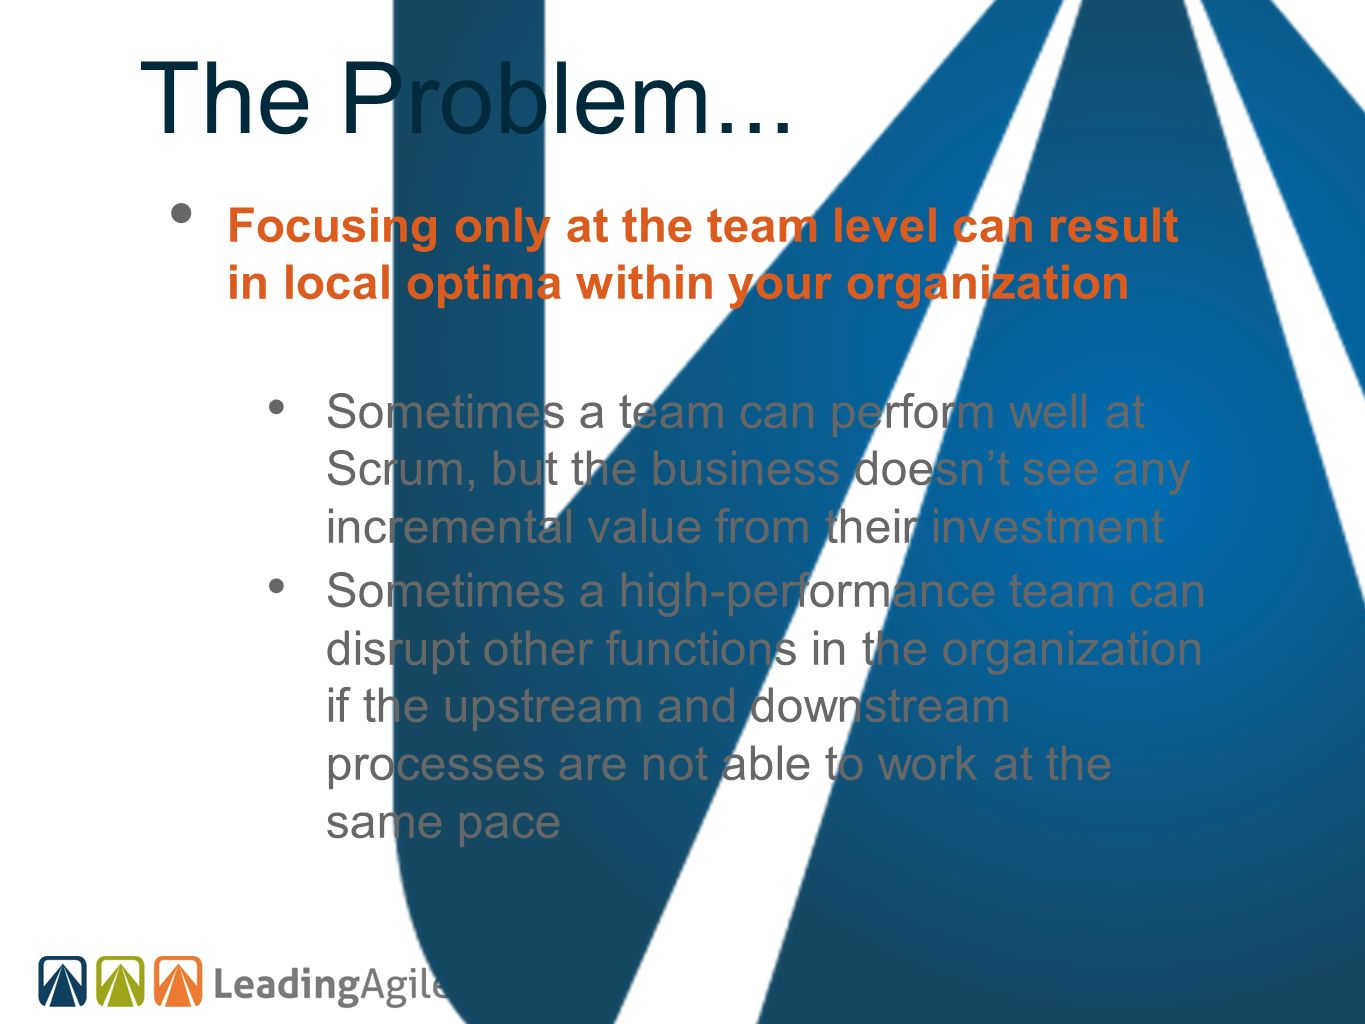 The Problem... Focusing only at the team level can result in local optima within your organization.